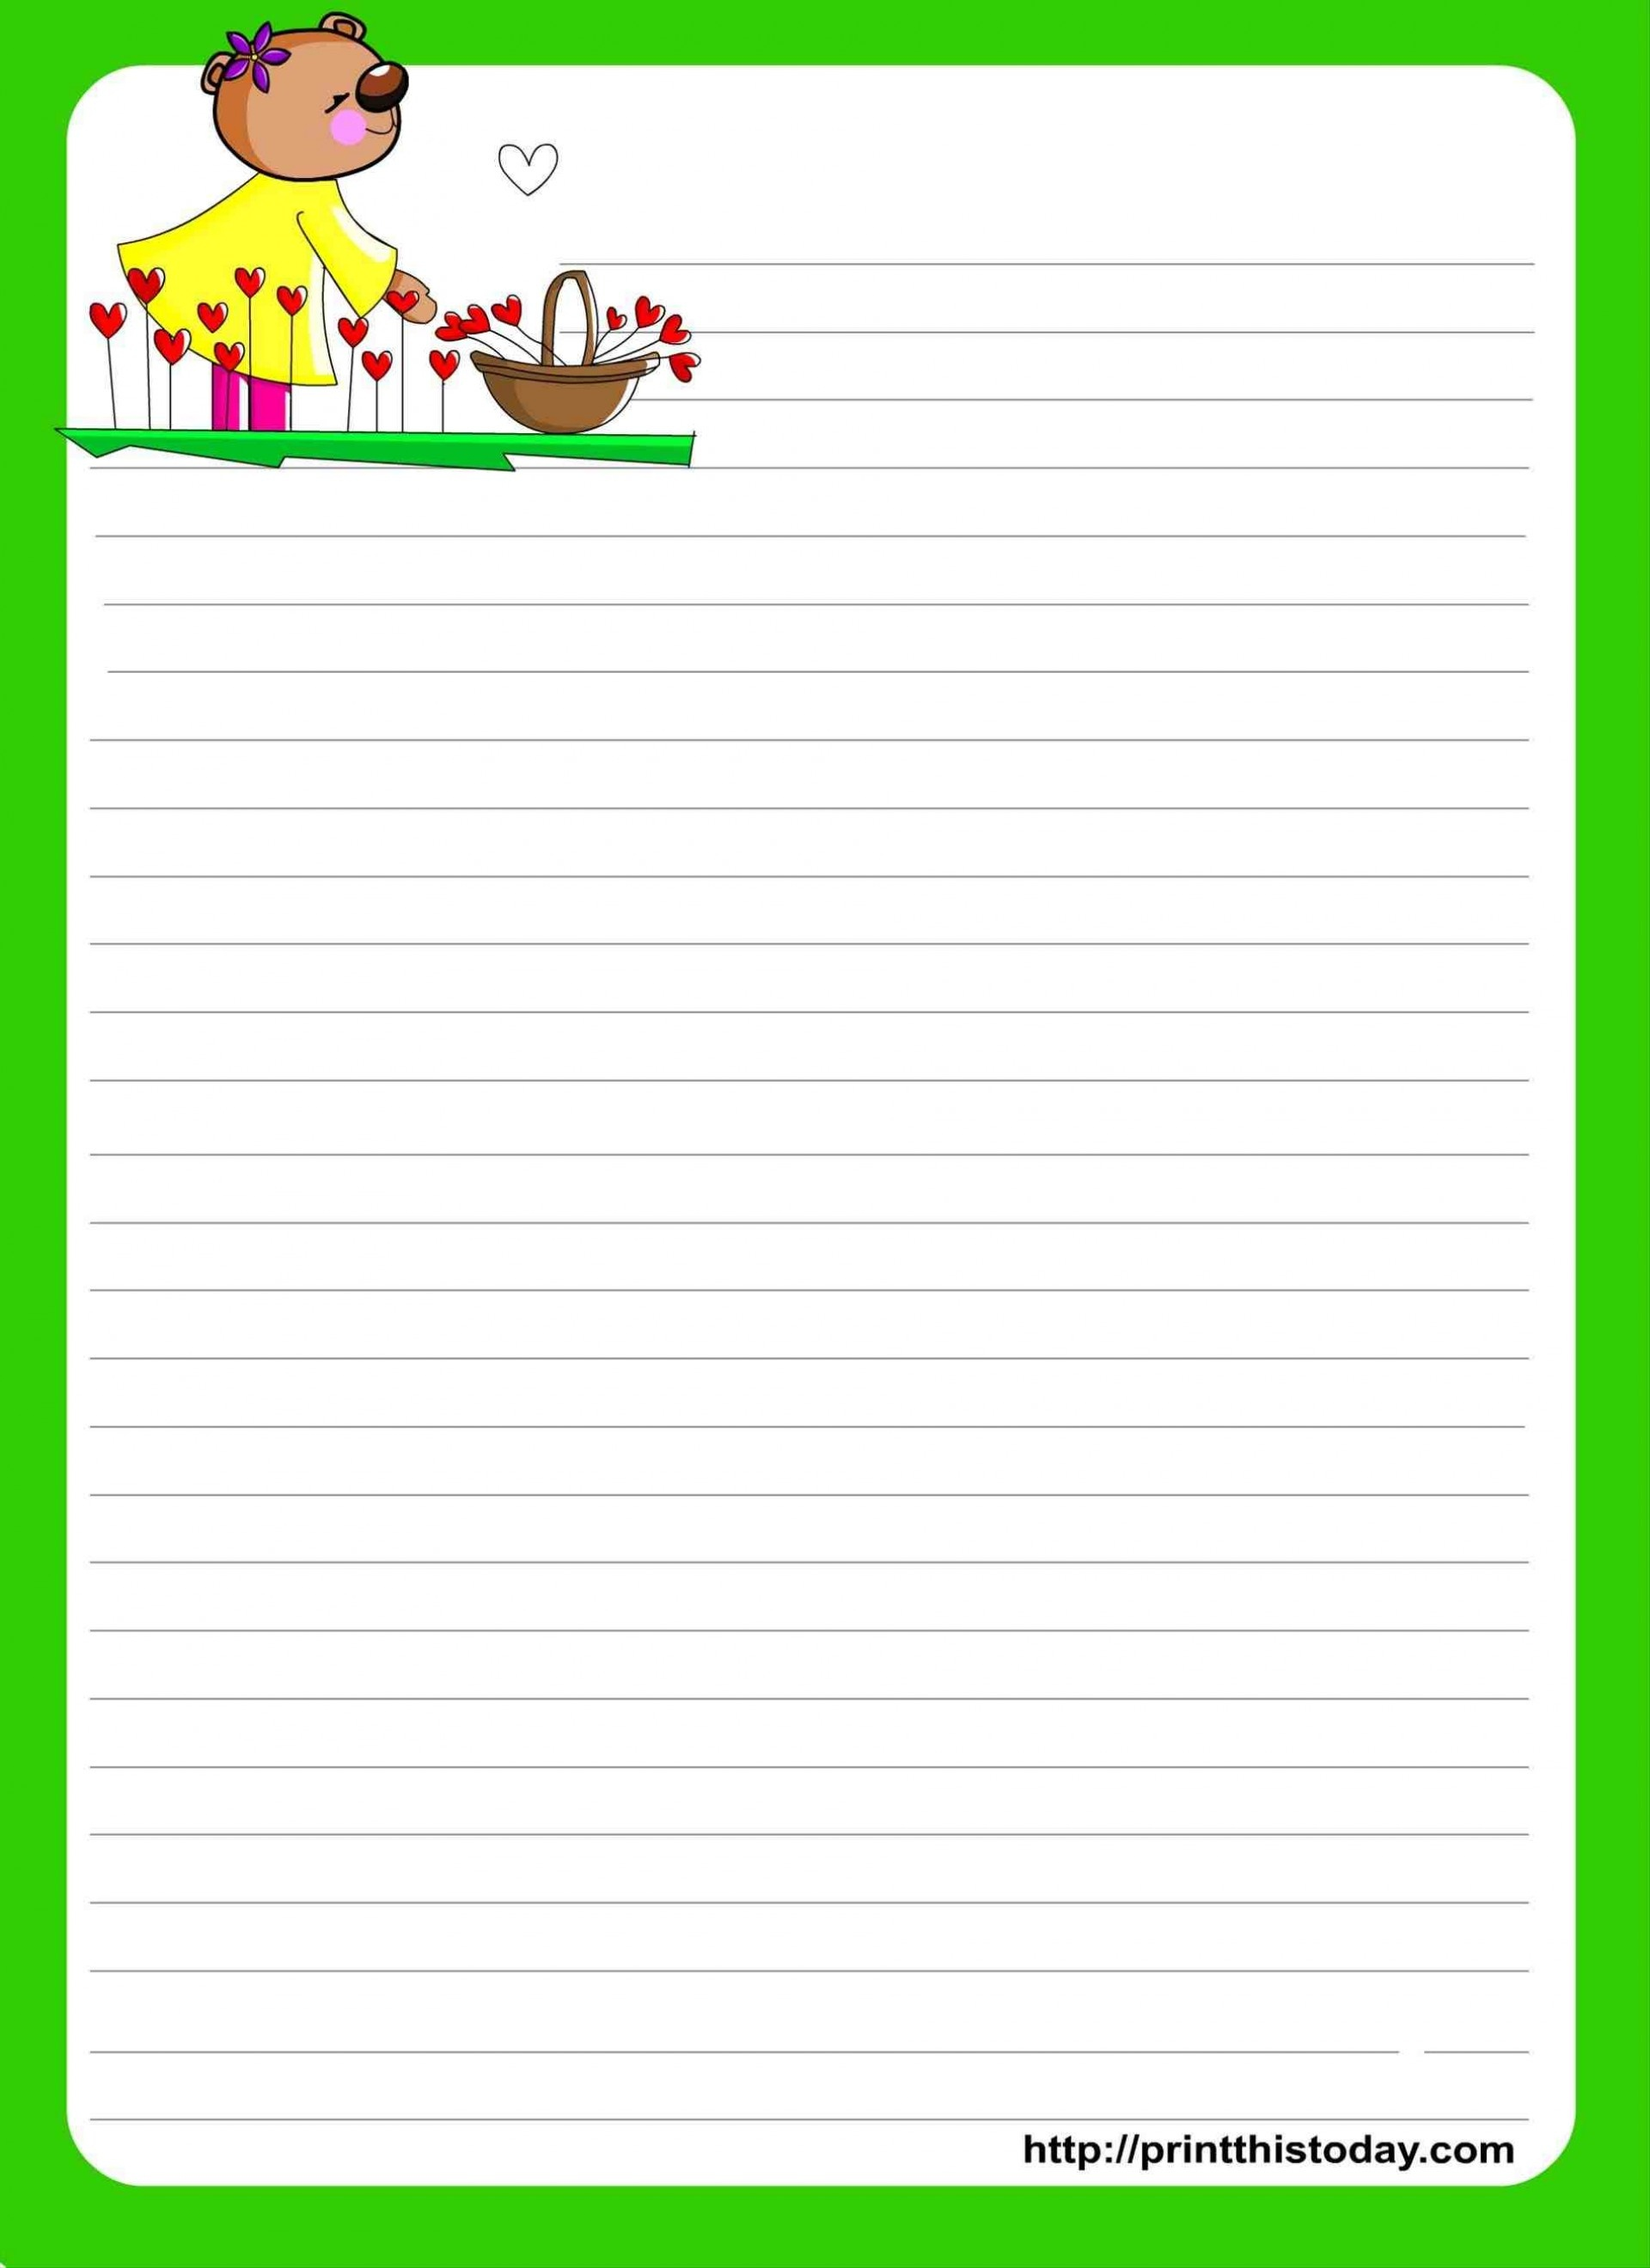 013 Template Ideas Free Printable Stationery Lined Stationary To - Free Printable Stationery